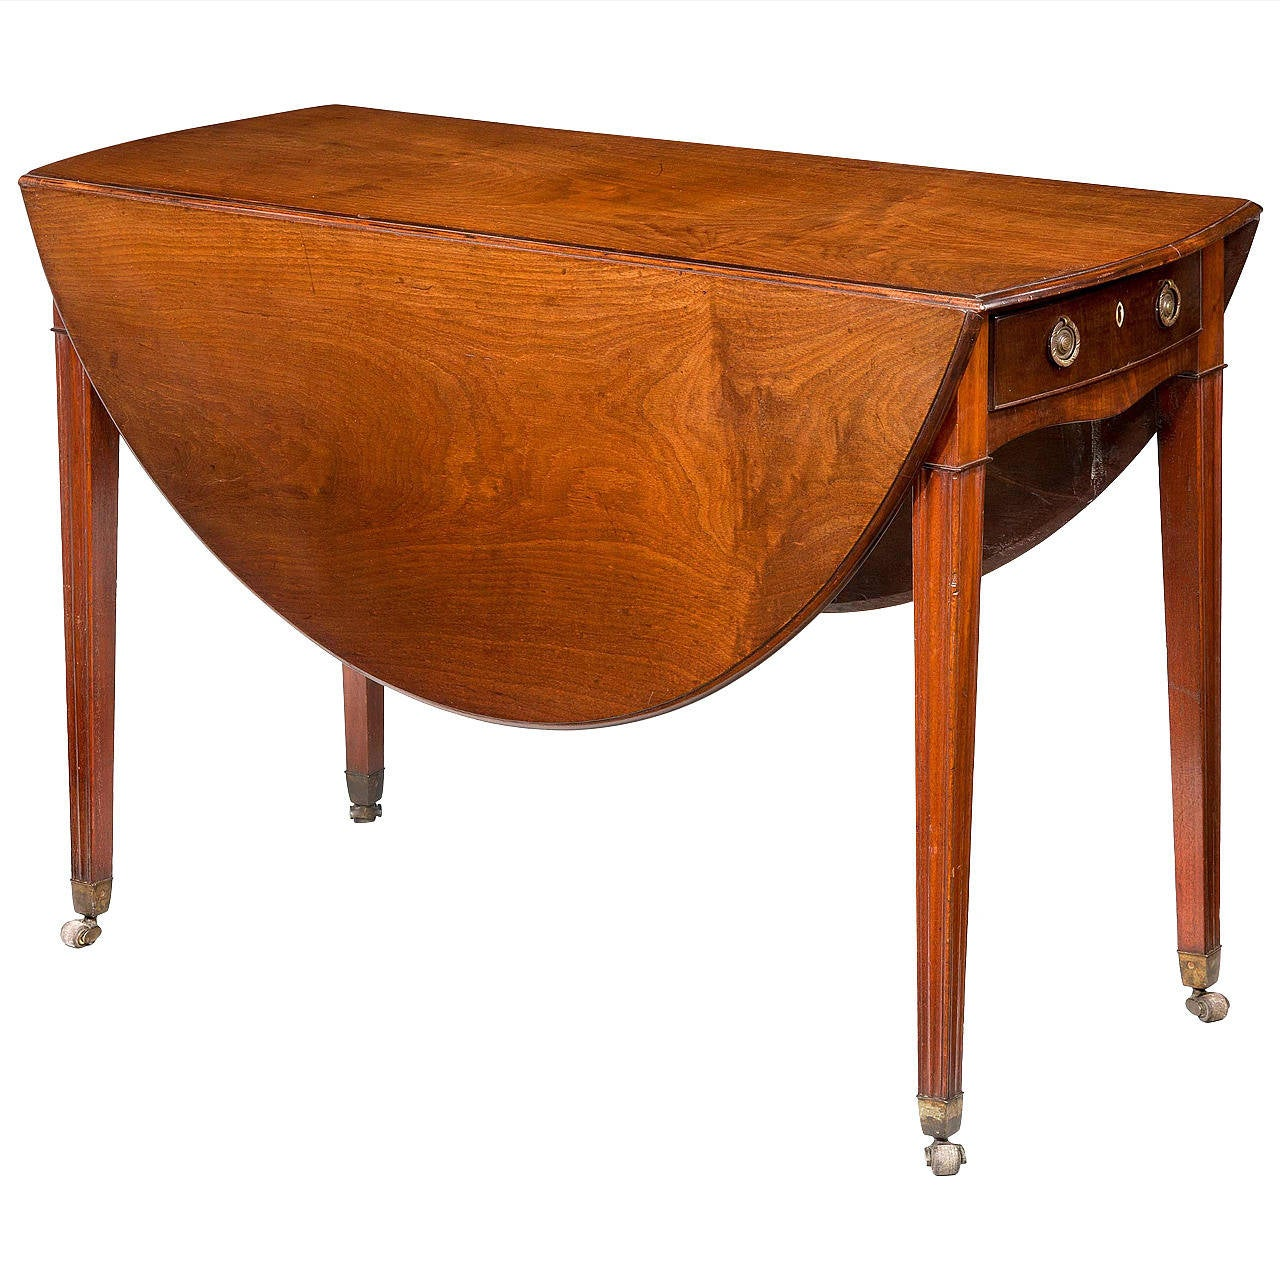 Late 18th Century Drop-Leaf Table